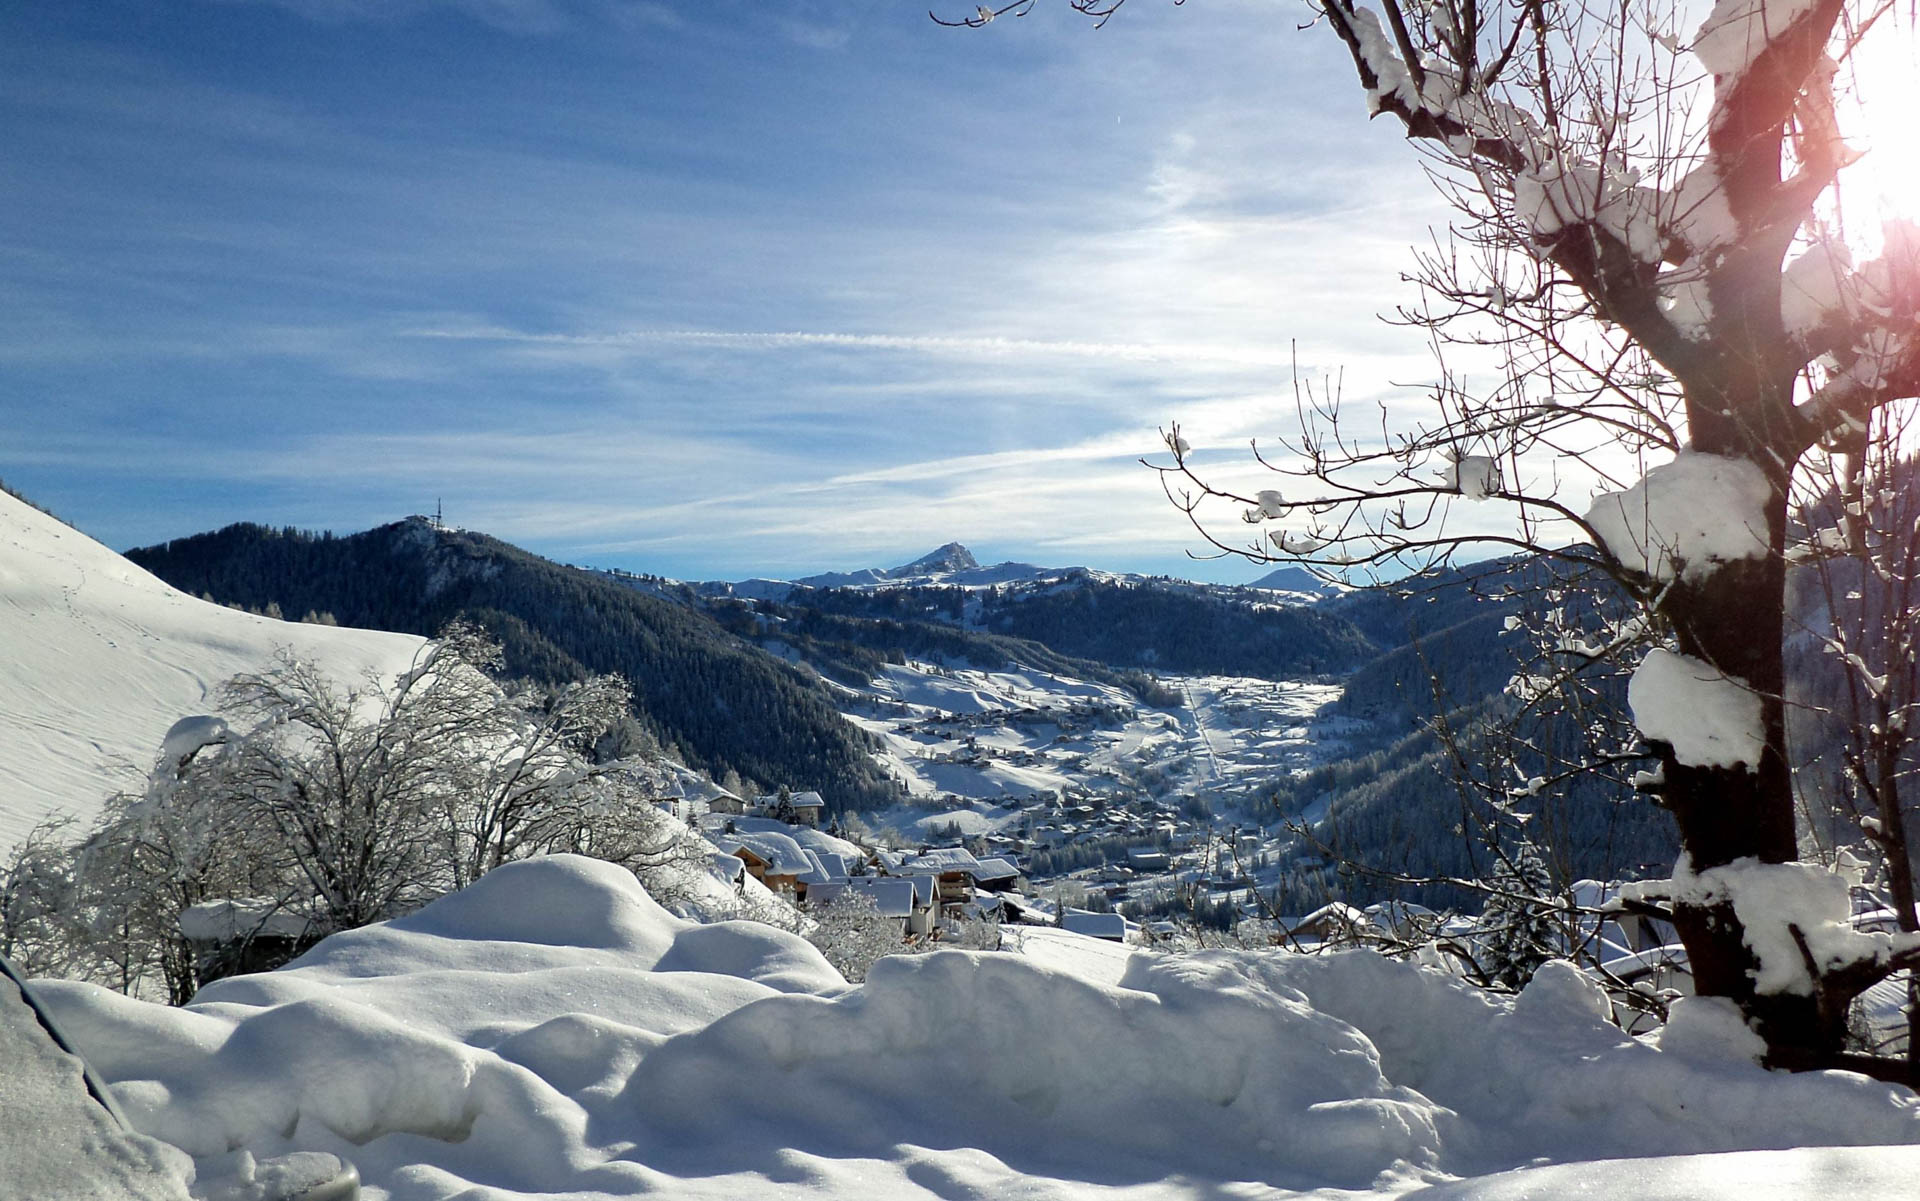 A view of the ski resort of Colfosco seen from a distance with the majestic mountains of the ski area behind it.